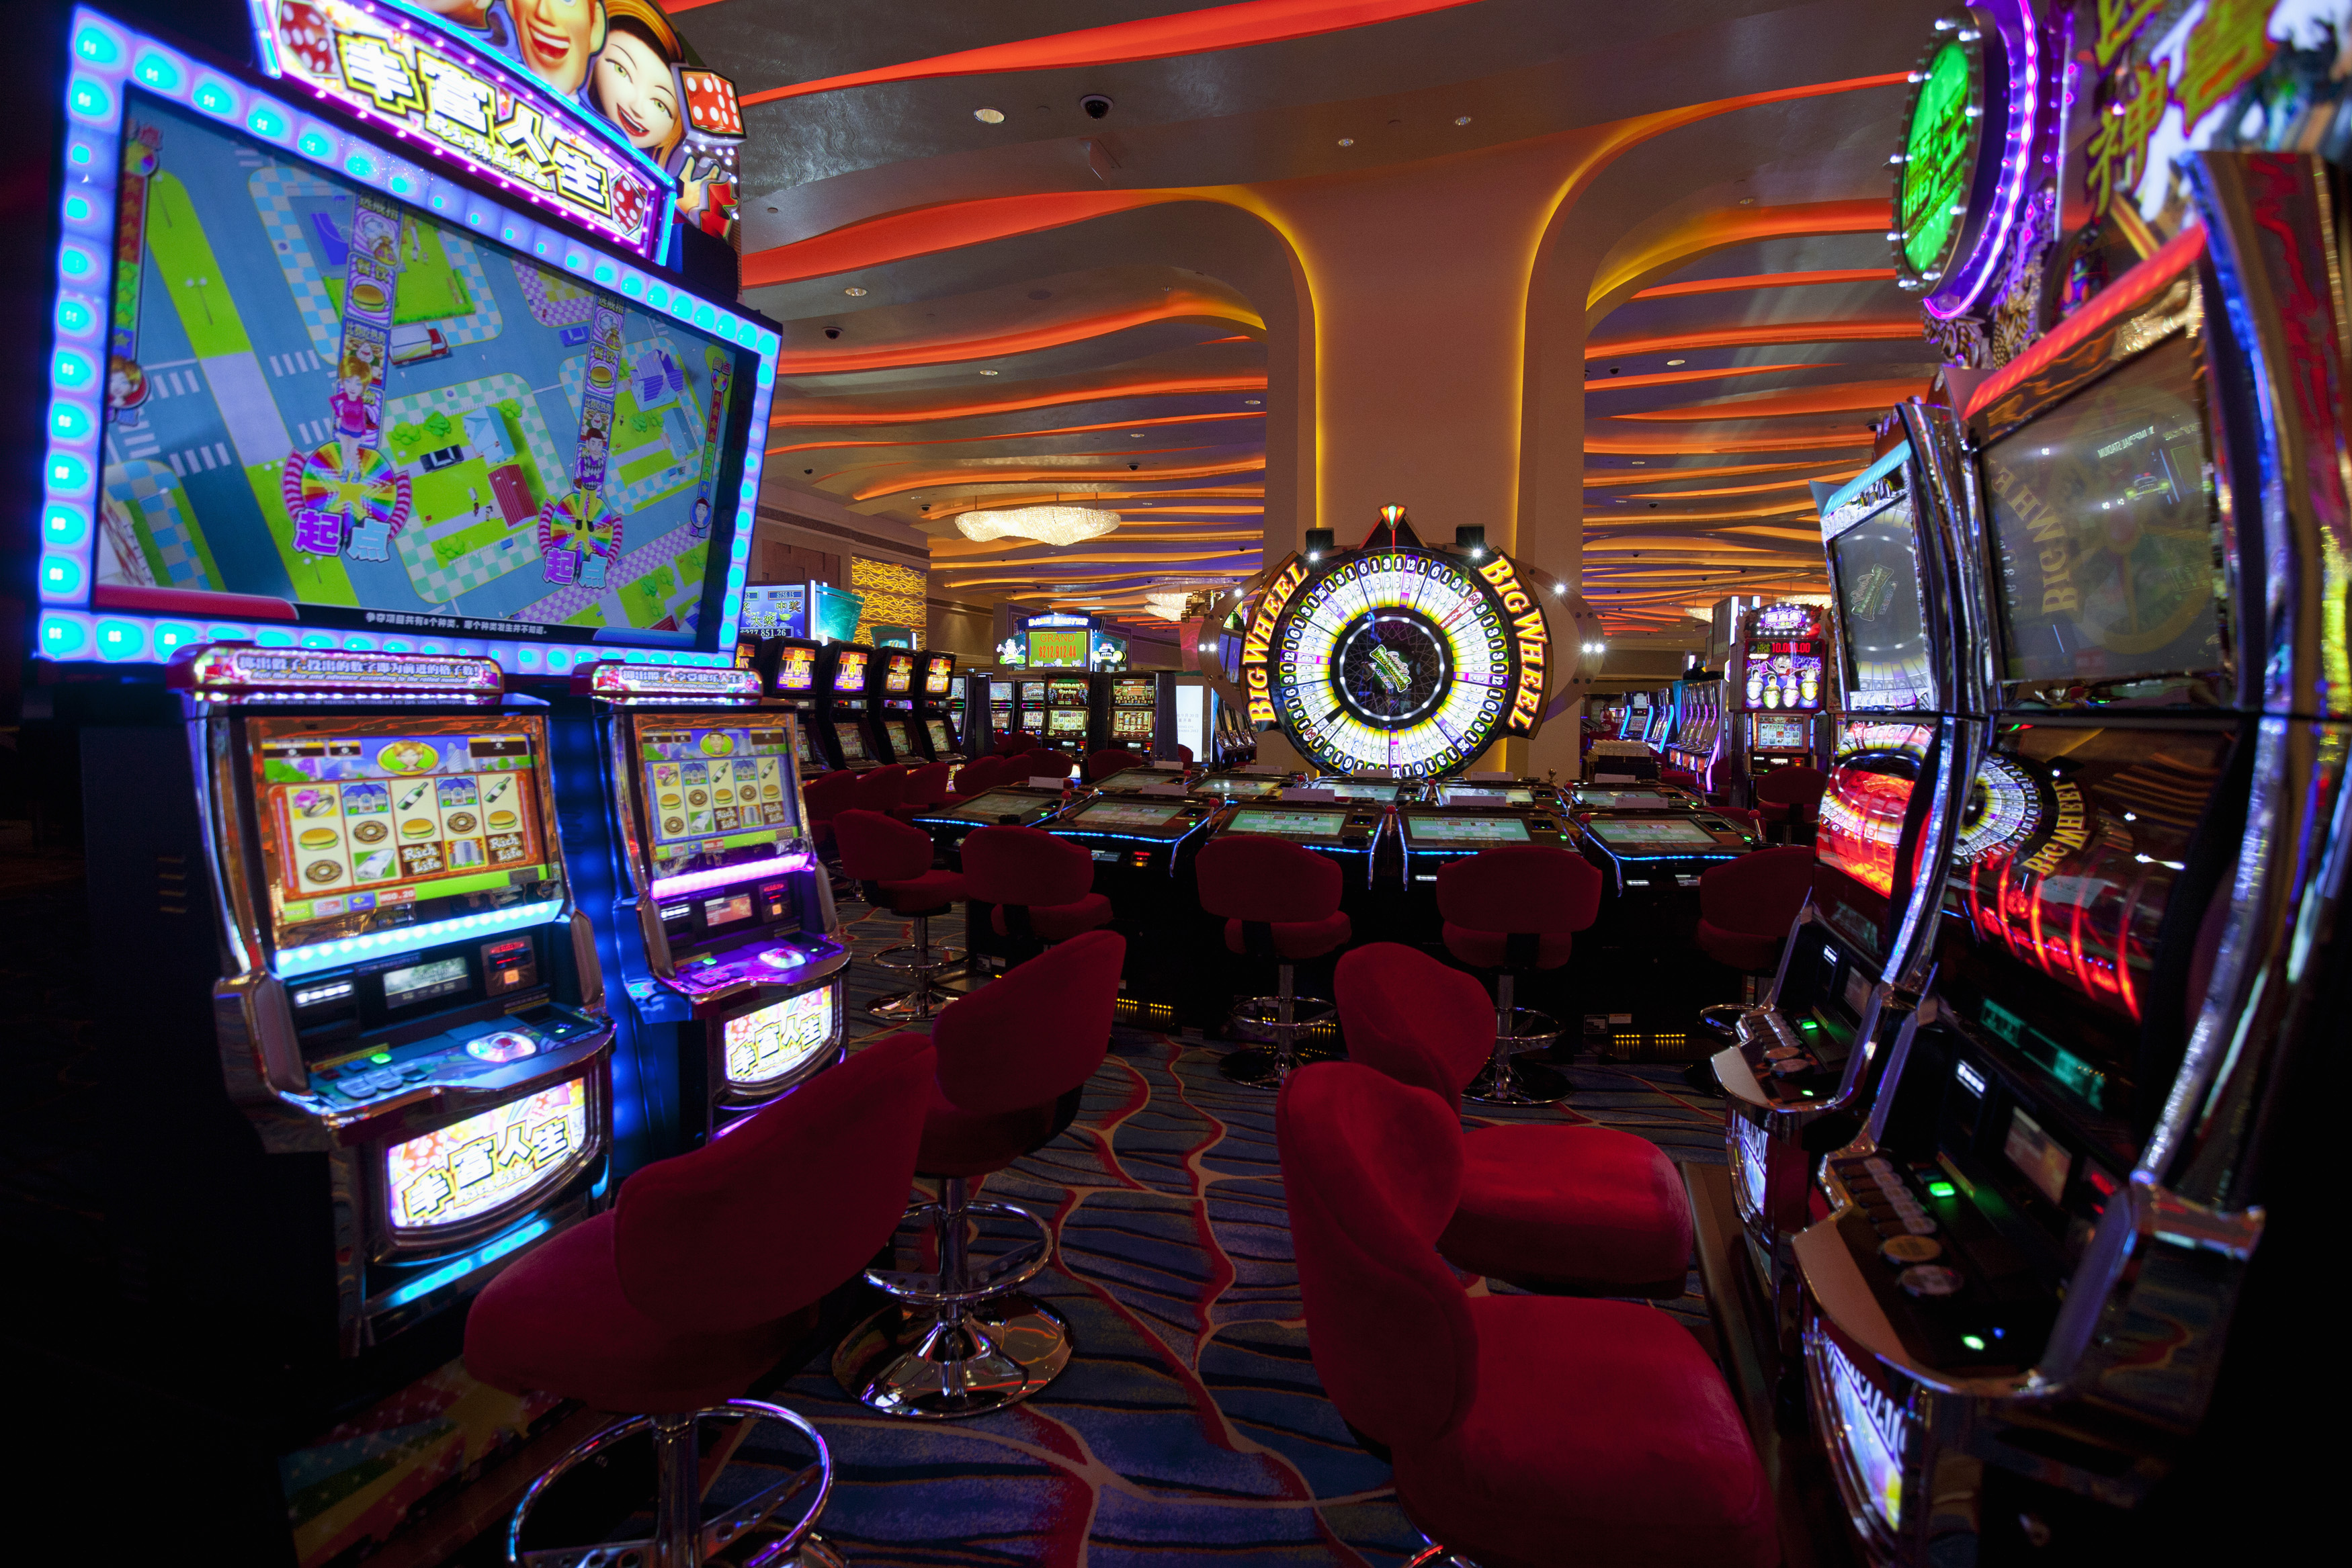 Gaming machines are seen inside a casino on the opening day of Sheraton Macao hotel at Sands Cotai Central in Macau September 20, 2012. REUTERS/Tyrone Siu